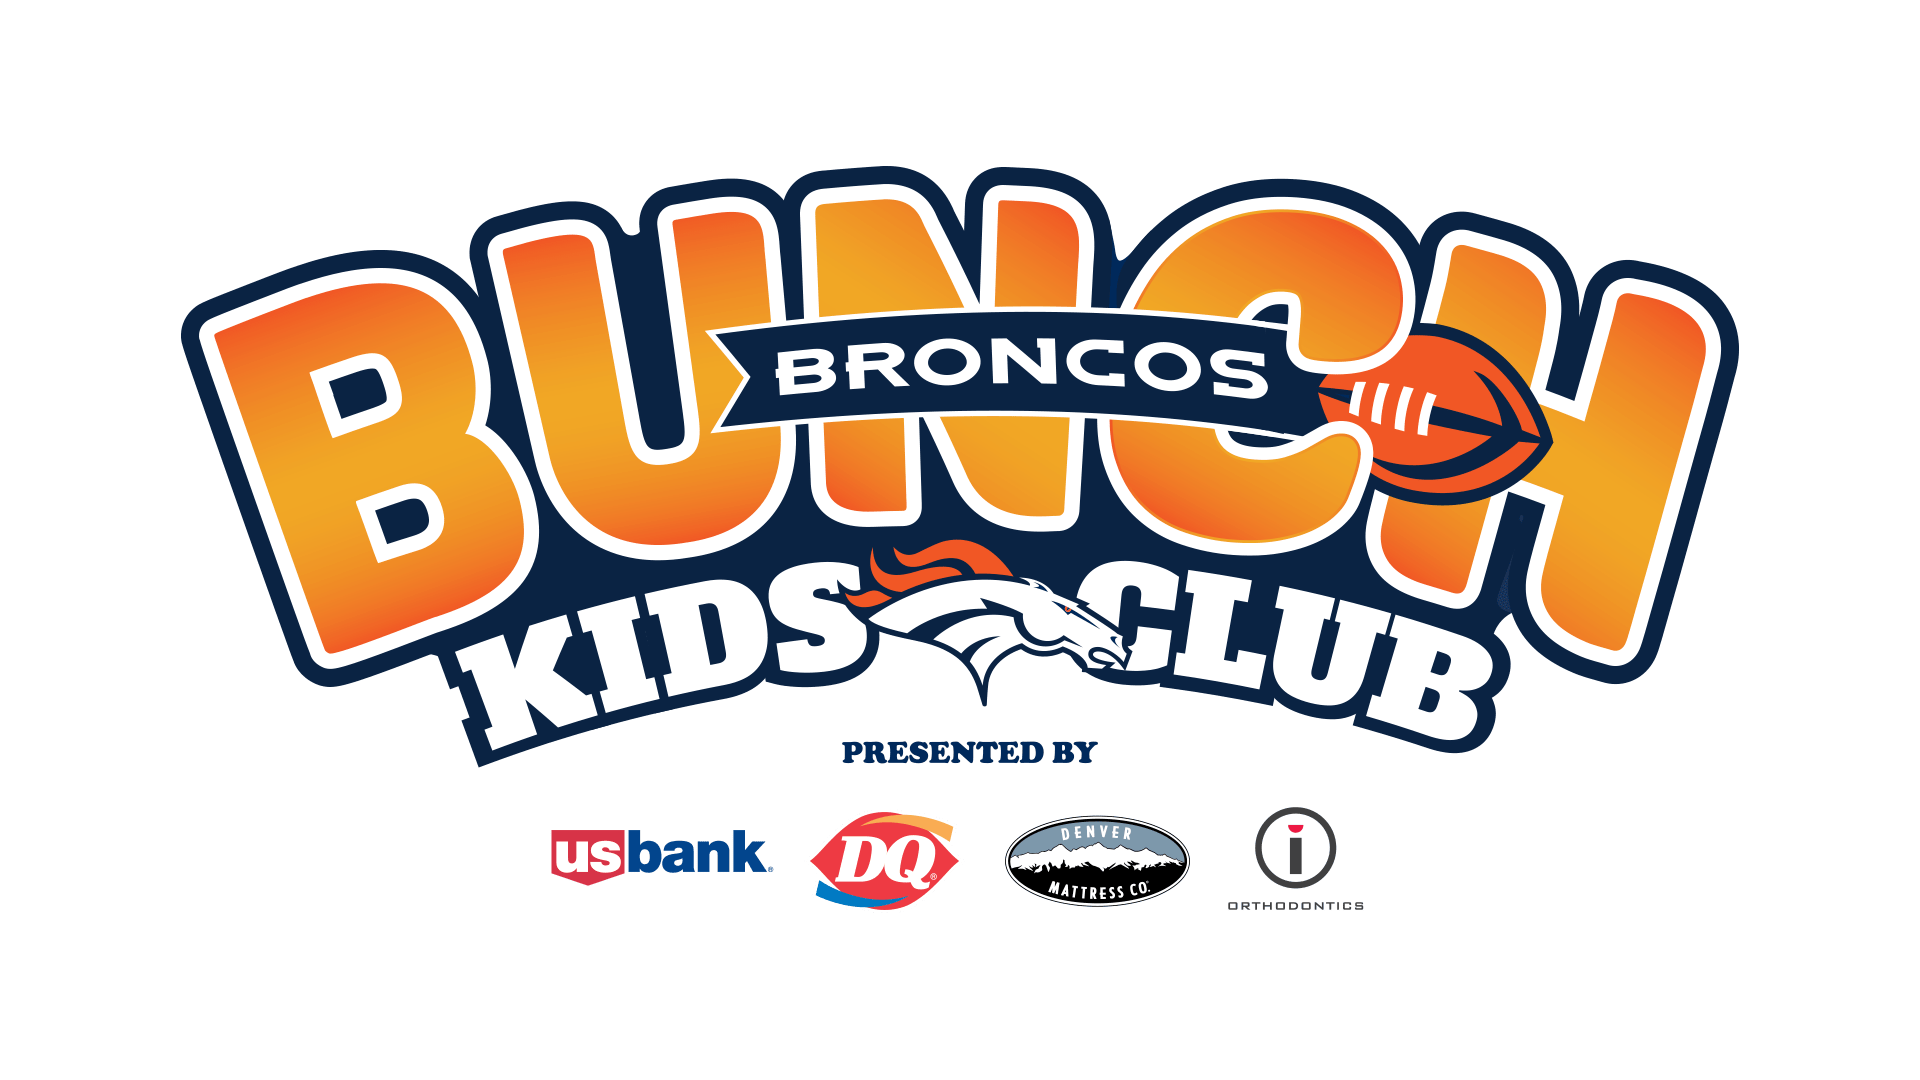 Broncos Bunch